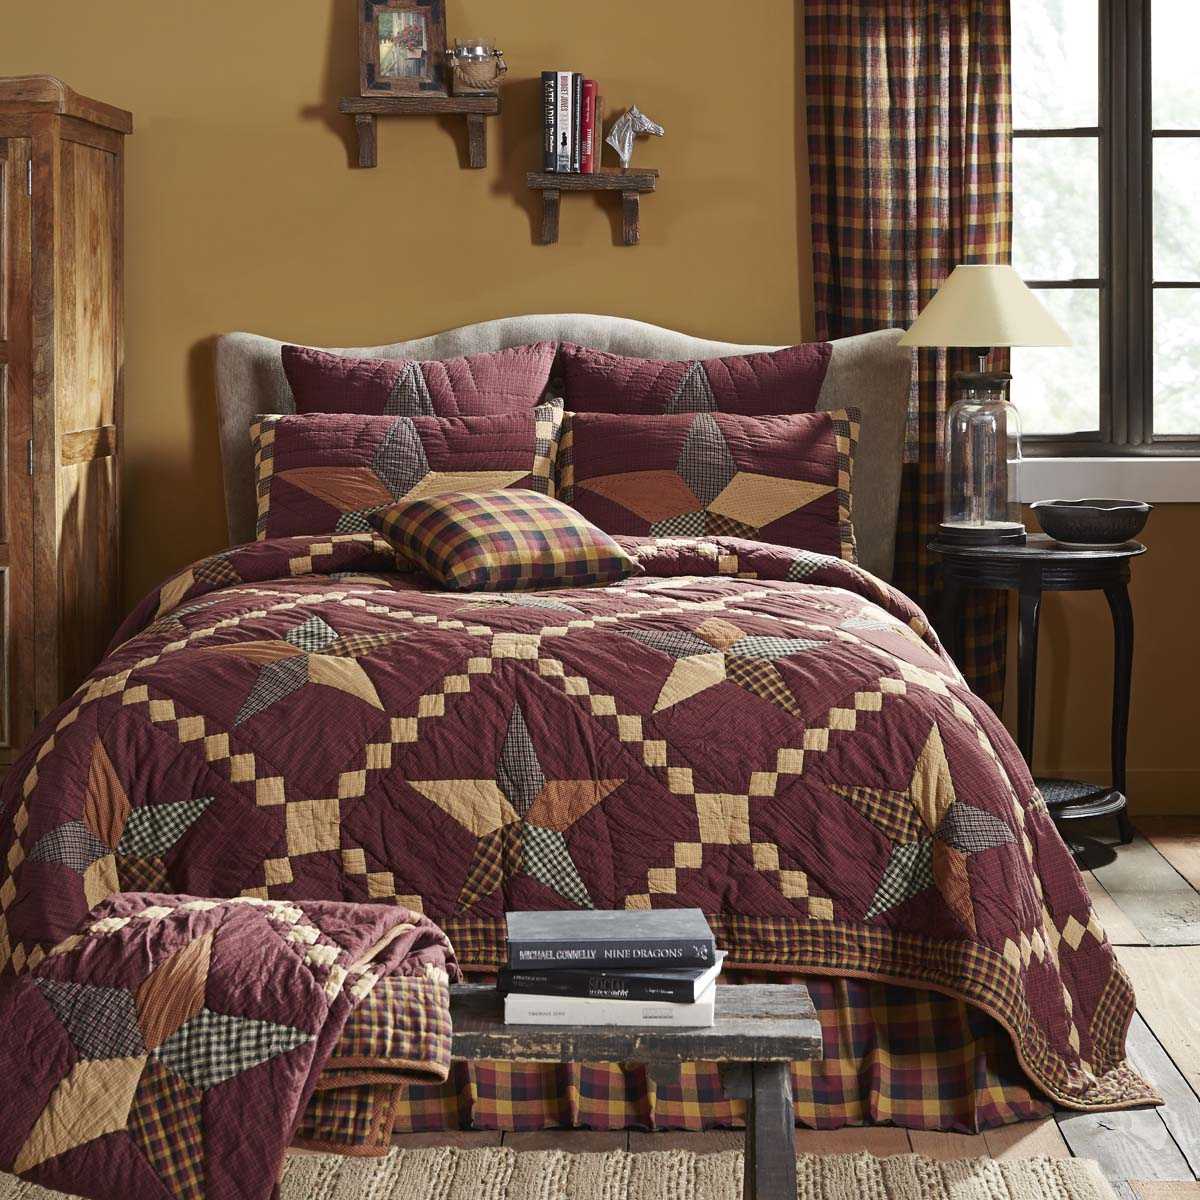 Folkways Star Luxury King Quilt 120Wx105L